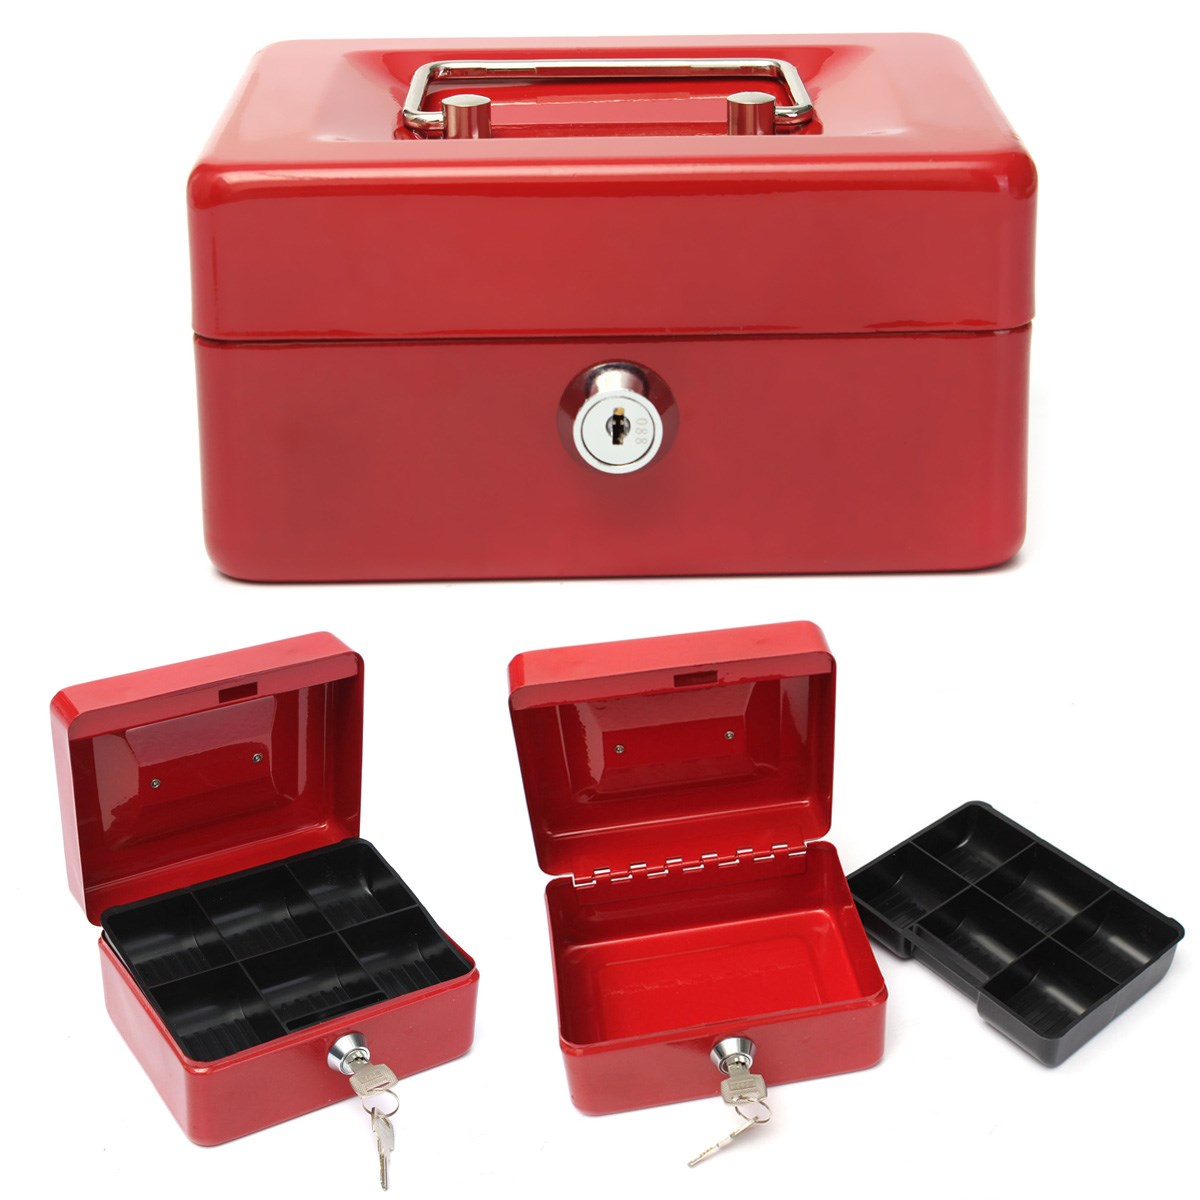 Buy Money Box Online Buy Wholesale Portable Cash Box From China Portable